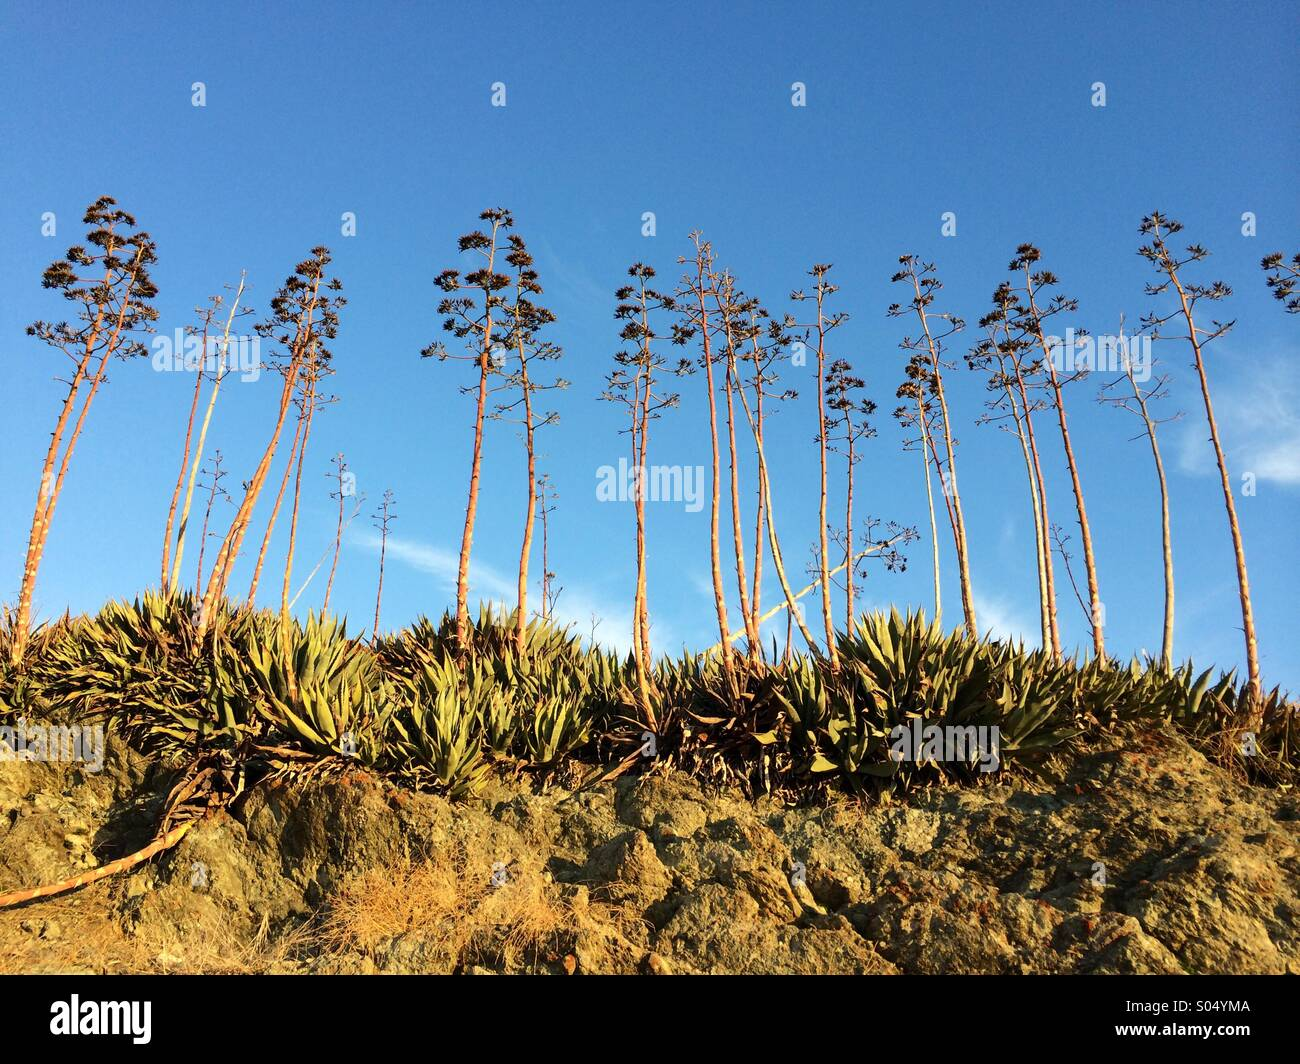 Reaching for the sky - Stock Image